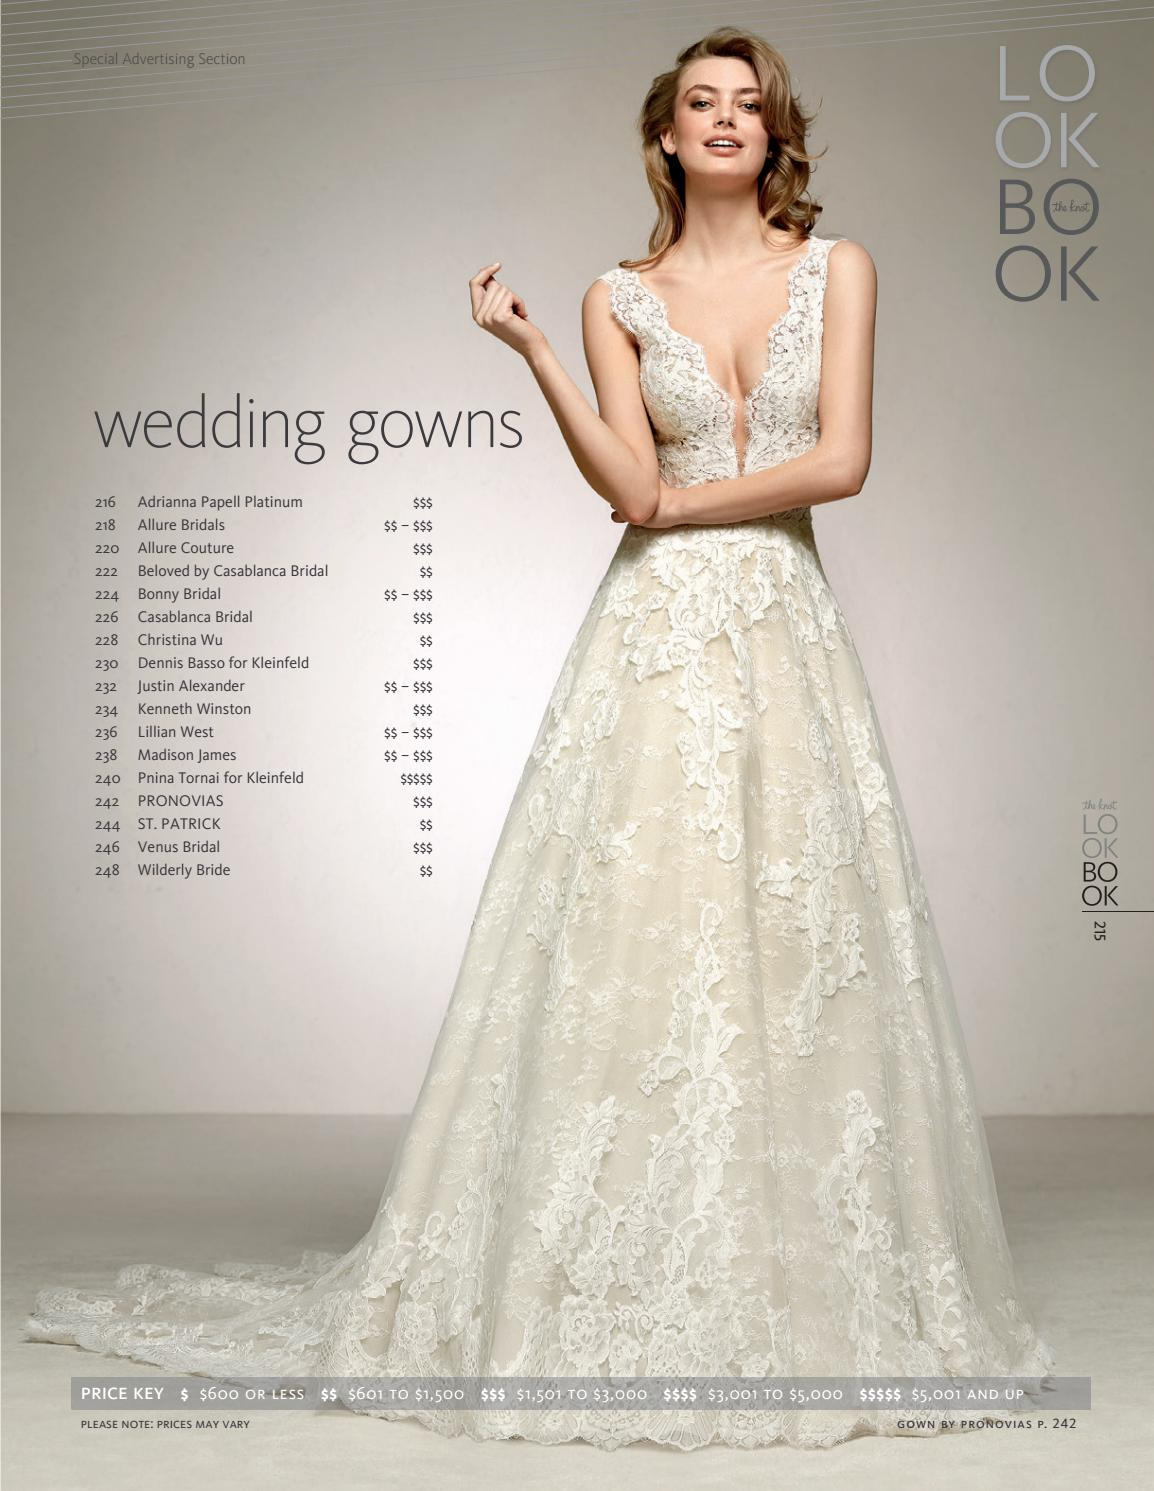 ced319bb8a6b6 Pnina Tornai Wedding Dresses 2018 Prices - Aztec Stone and Reclamations